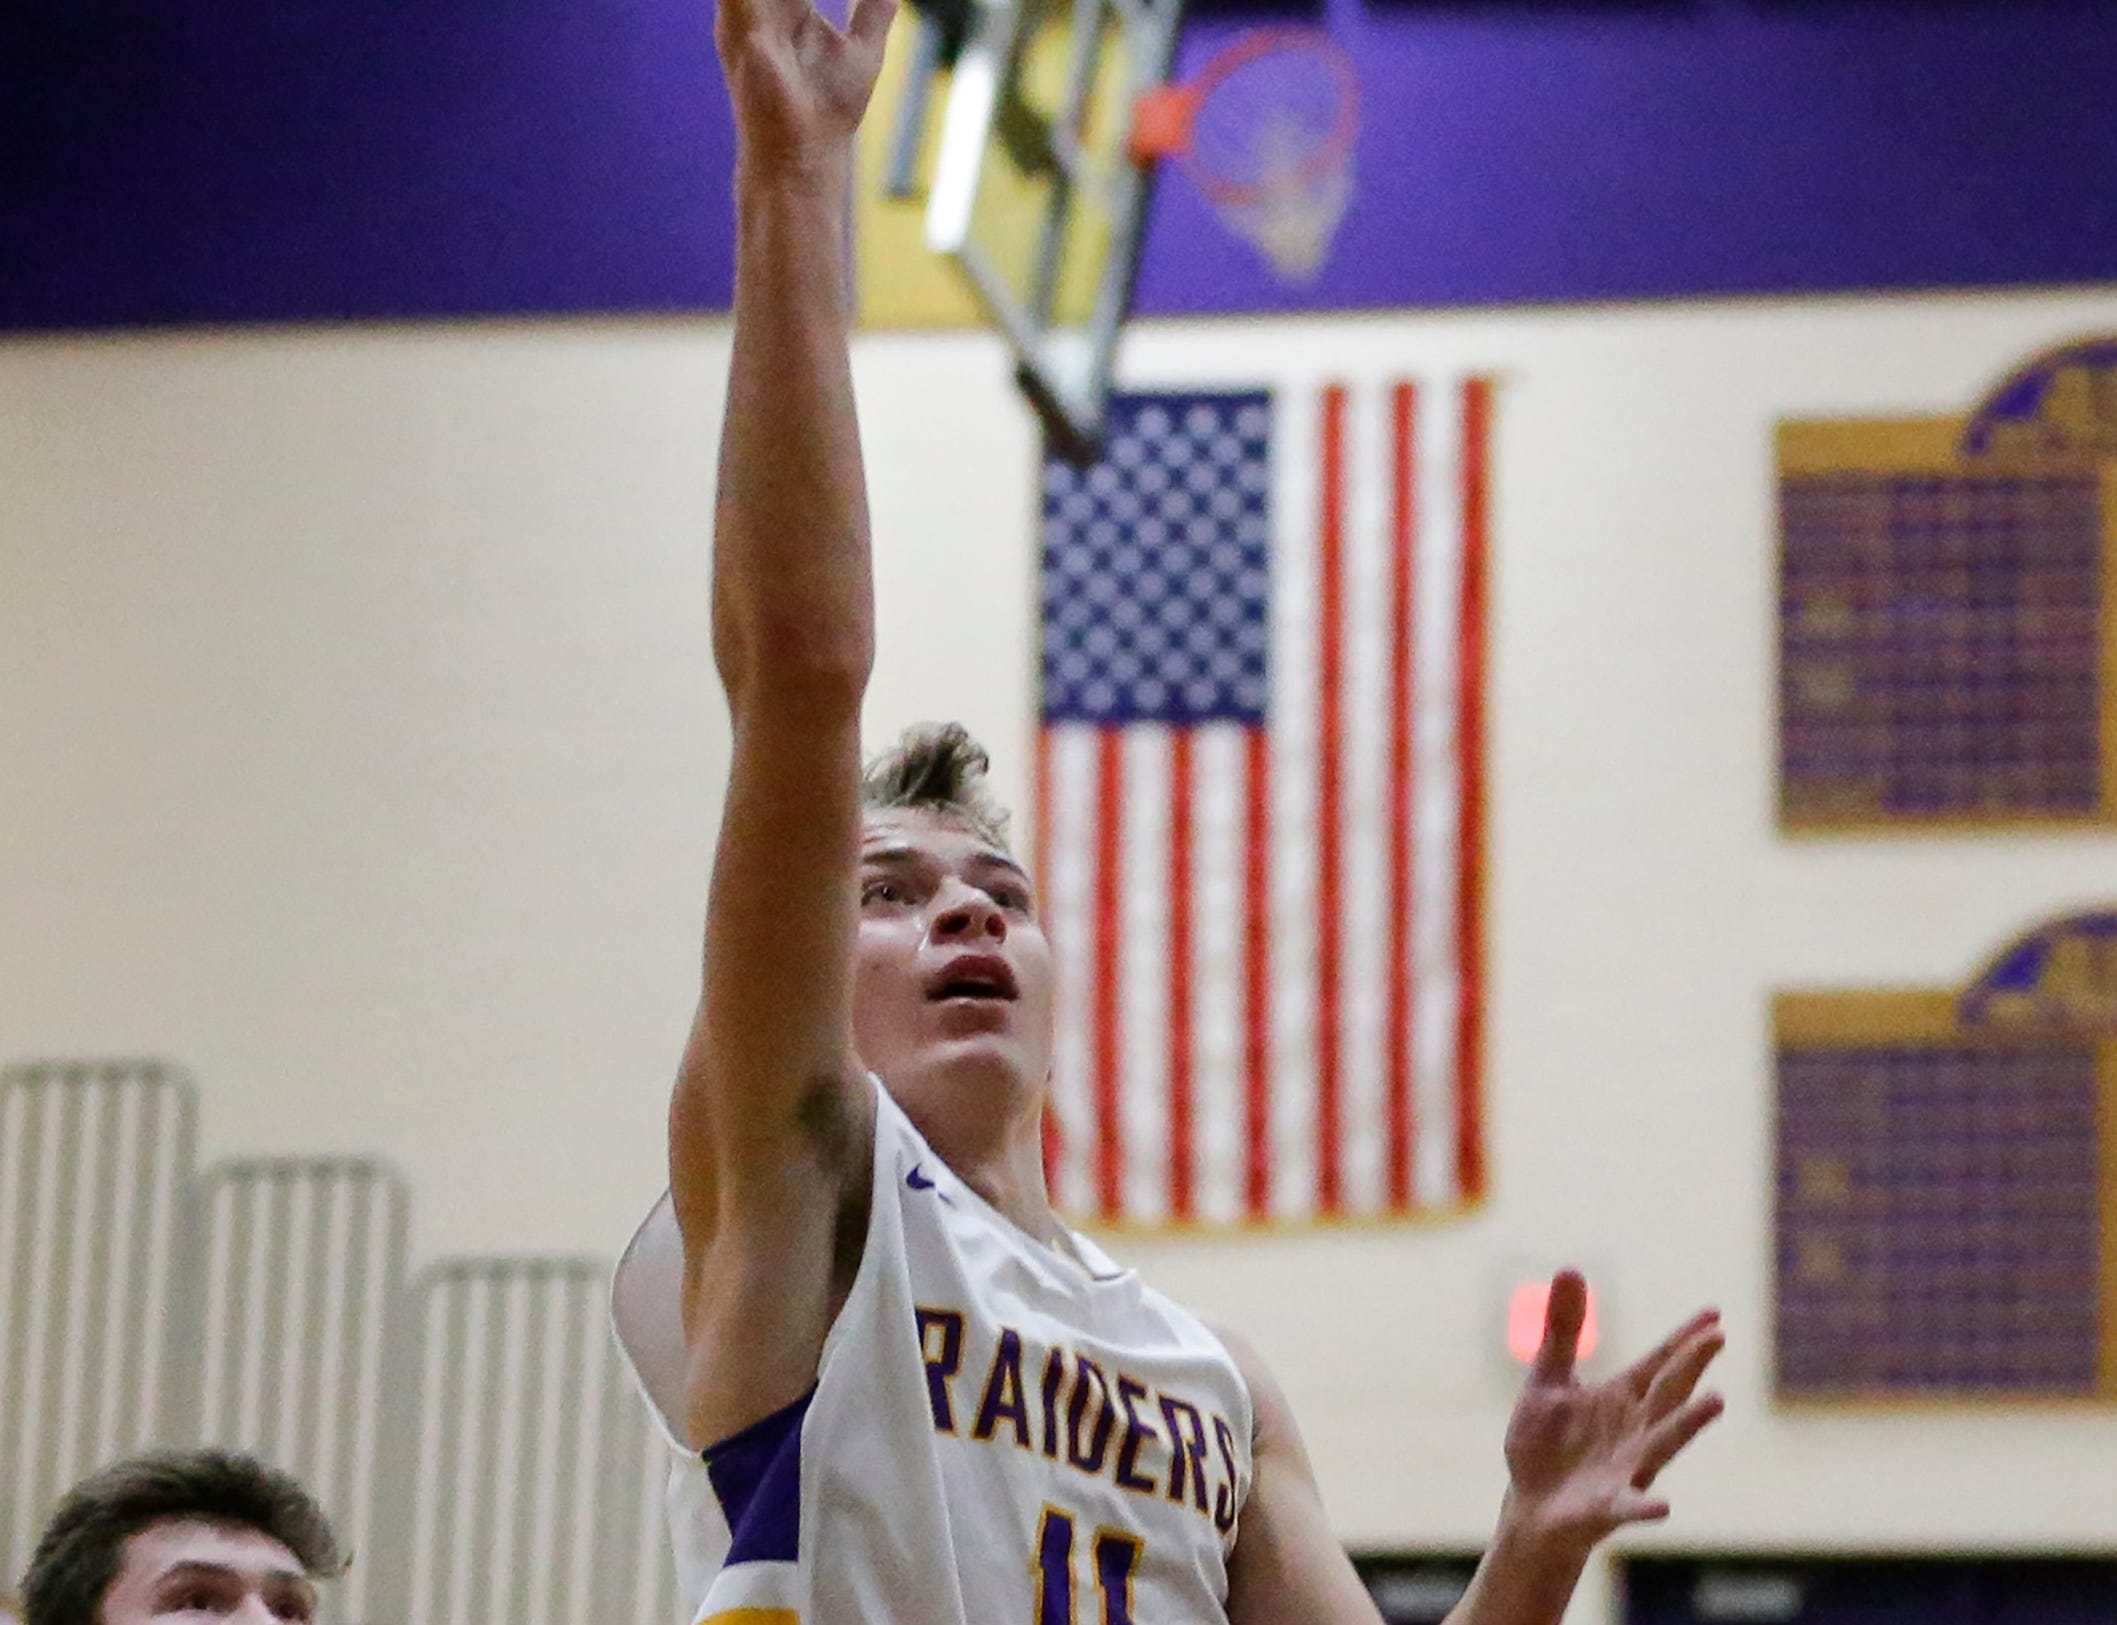 Two Rivers' Alexander Klein shoots against Green Bay NEW Lutheran at Two Rivers High School Tuesday, January 8, 2019, in Two Rivers, Wis. Joshua Clark/USA TODAY NETWORK-Wisconsin